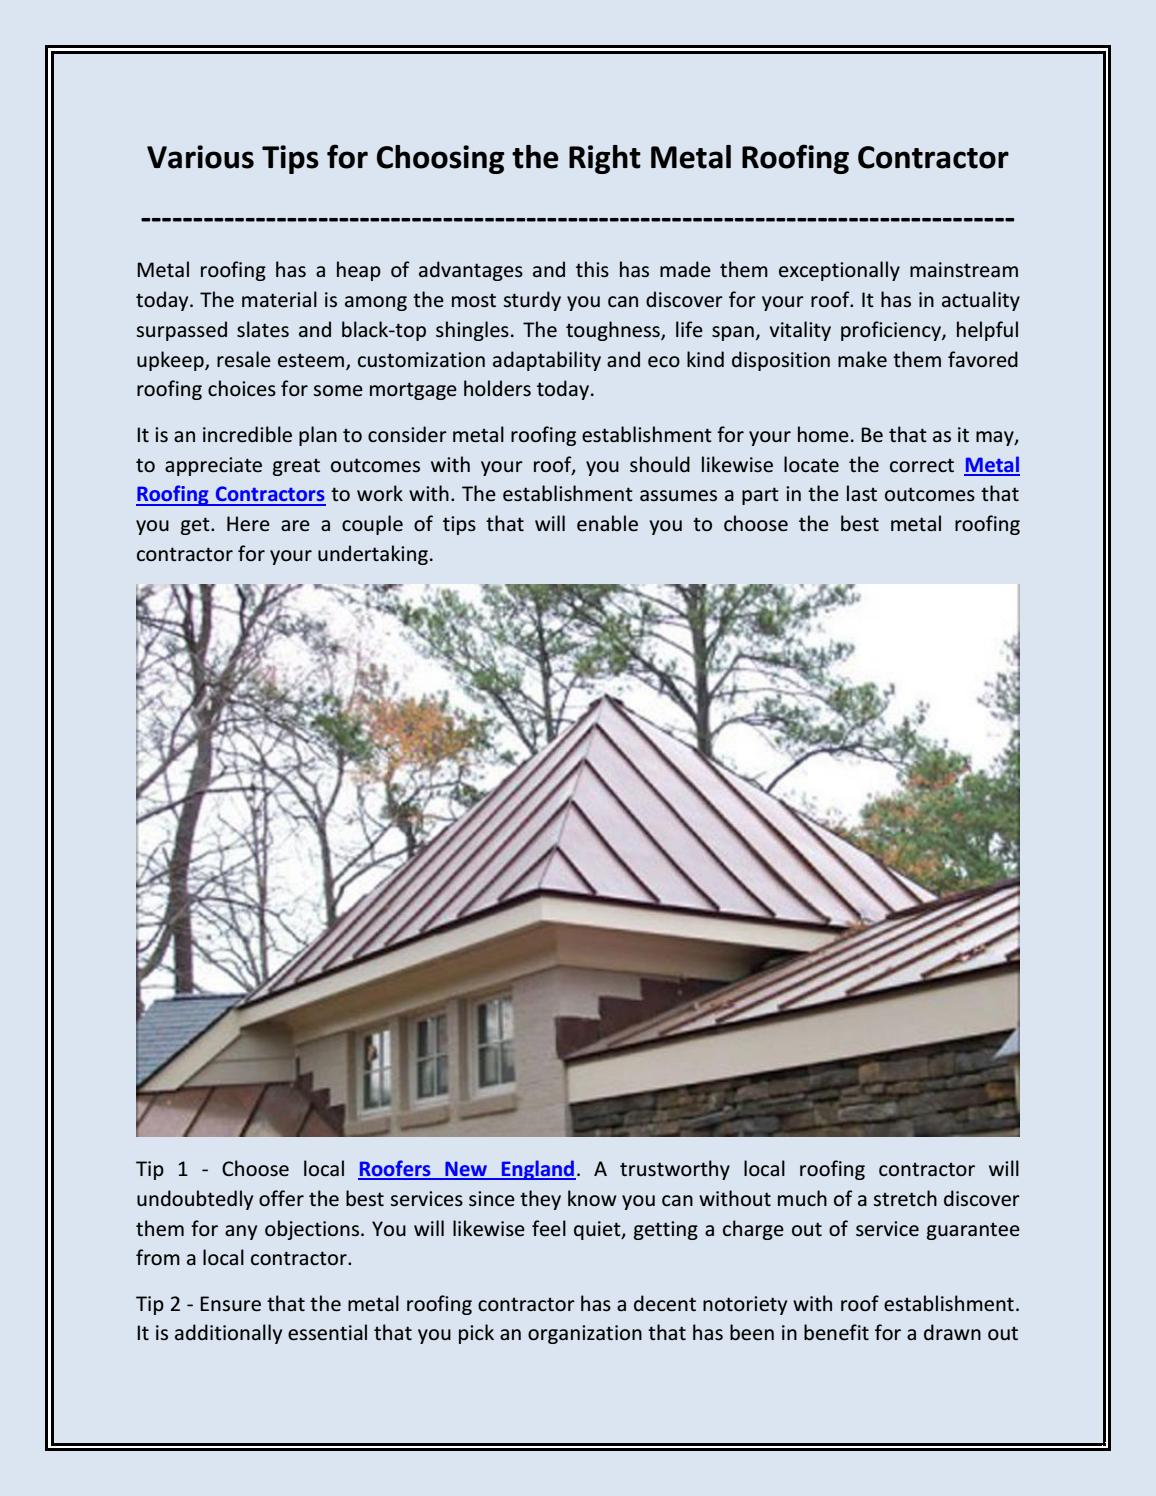 Various Tips For Choosing The Right Metal Roofing Contractor By Olympicroofing Issuu